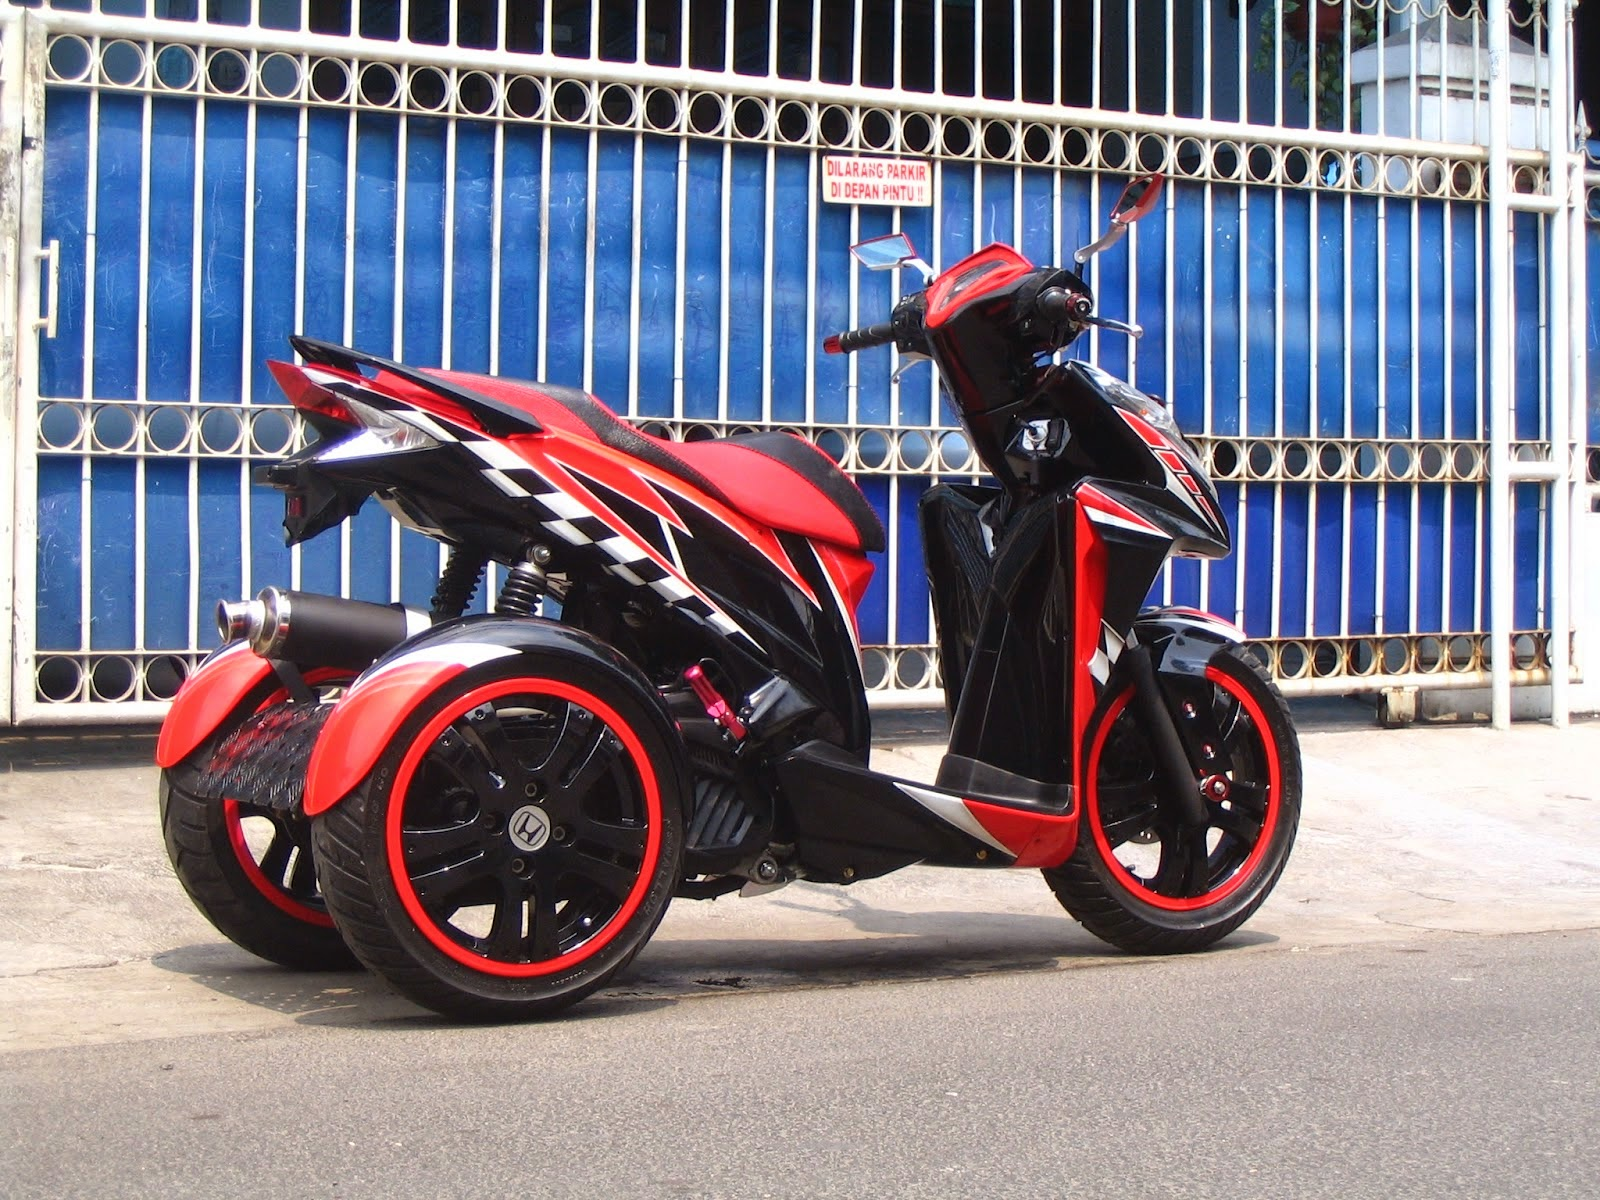 Modifikasi-Minimalis-Vario-Techno-125-modifikasi-vario-techno-125-pgm ...